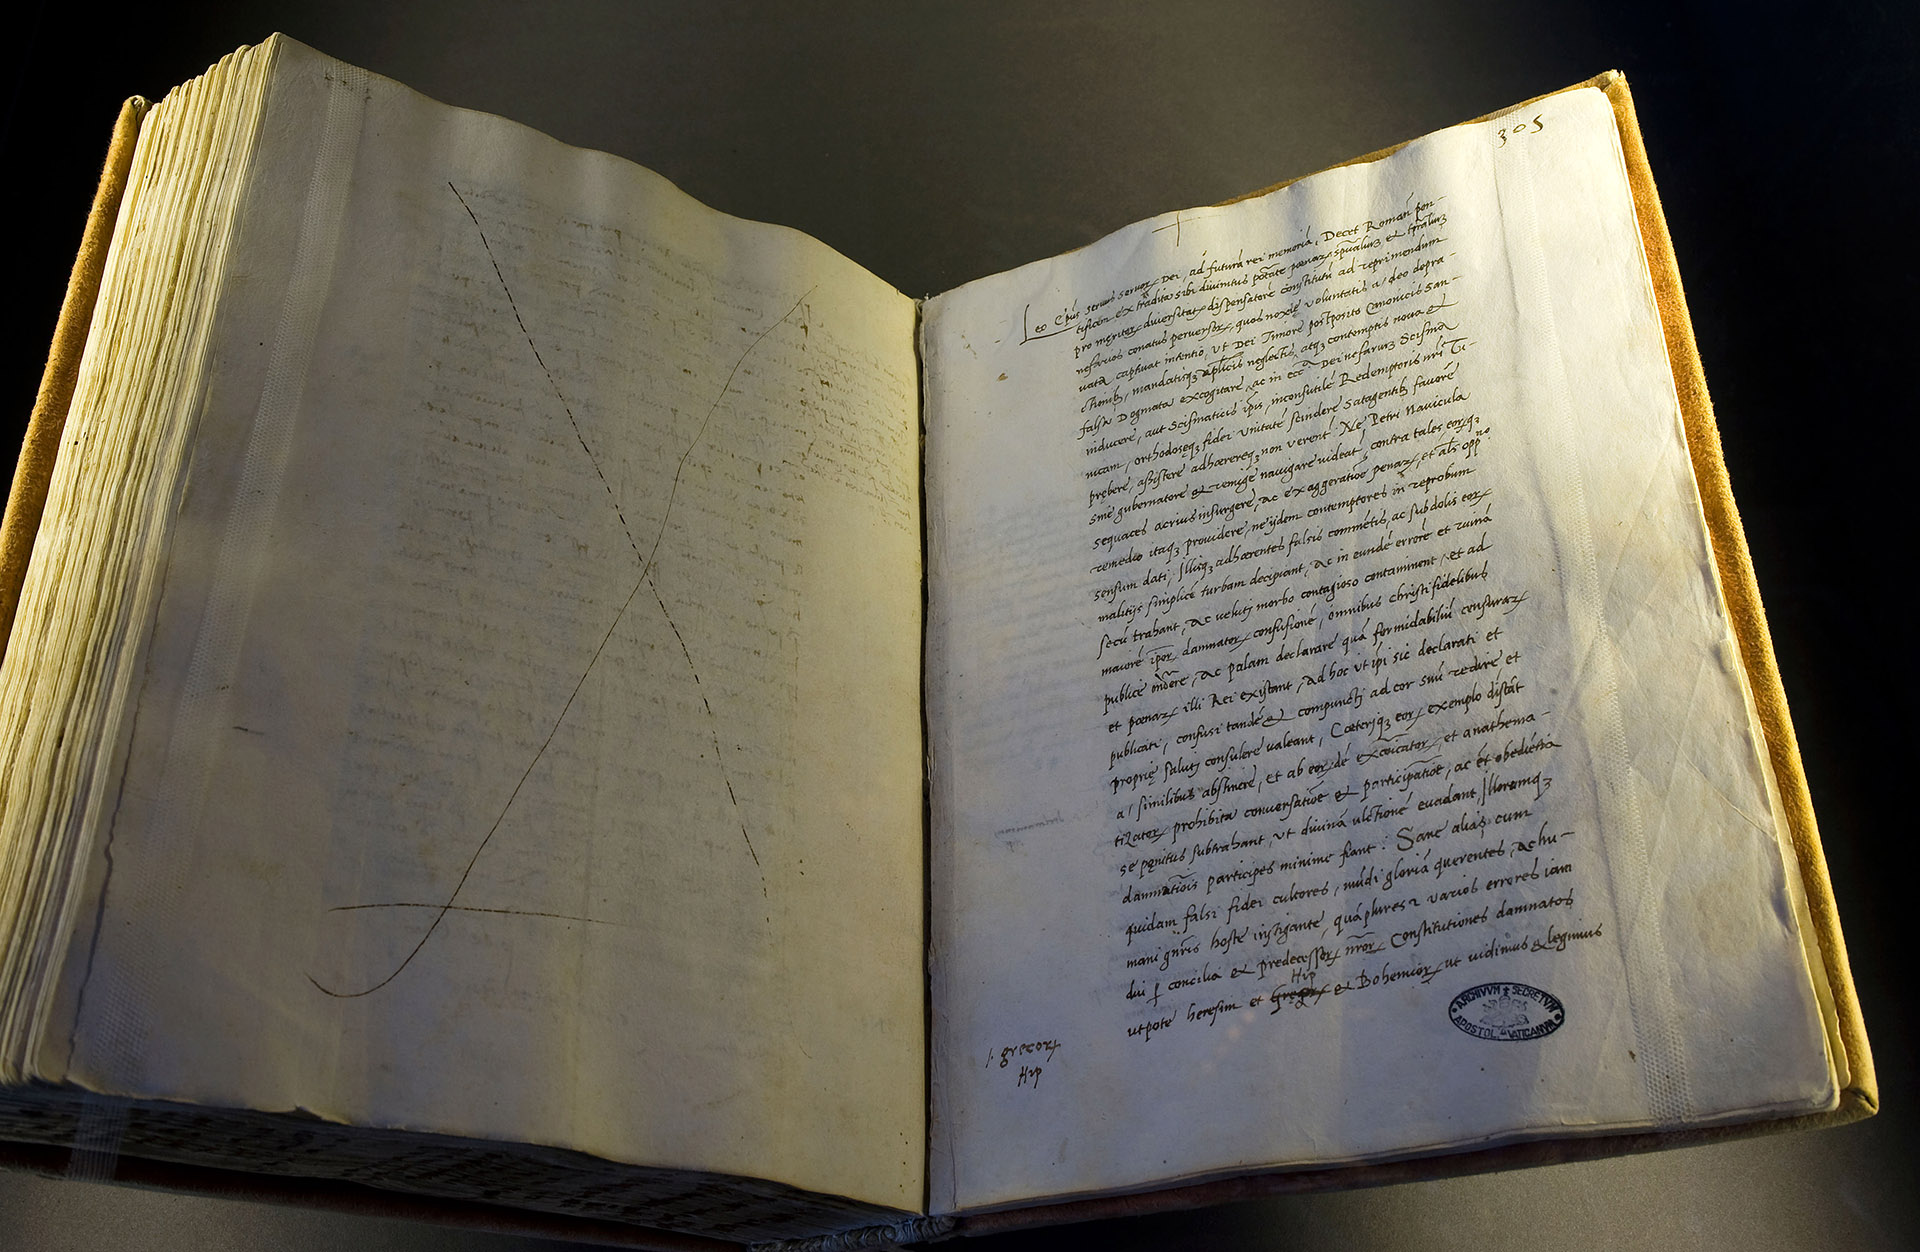 The document of excommunication of Martin Luther in an exhibition of the Vatican Secret Archives. (Credit: Elio Lombardo/Alamy Stock Photo)